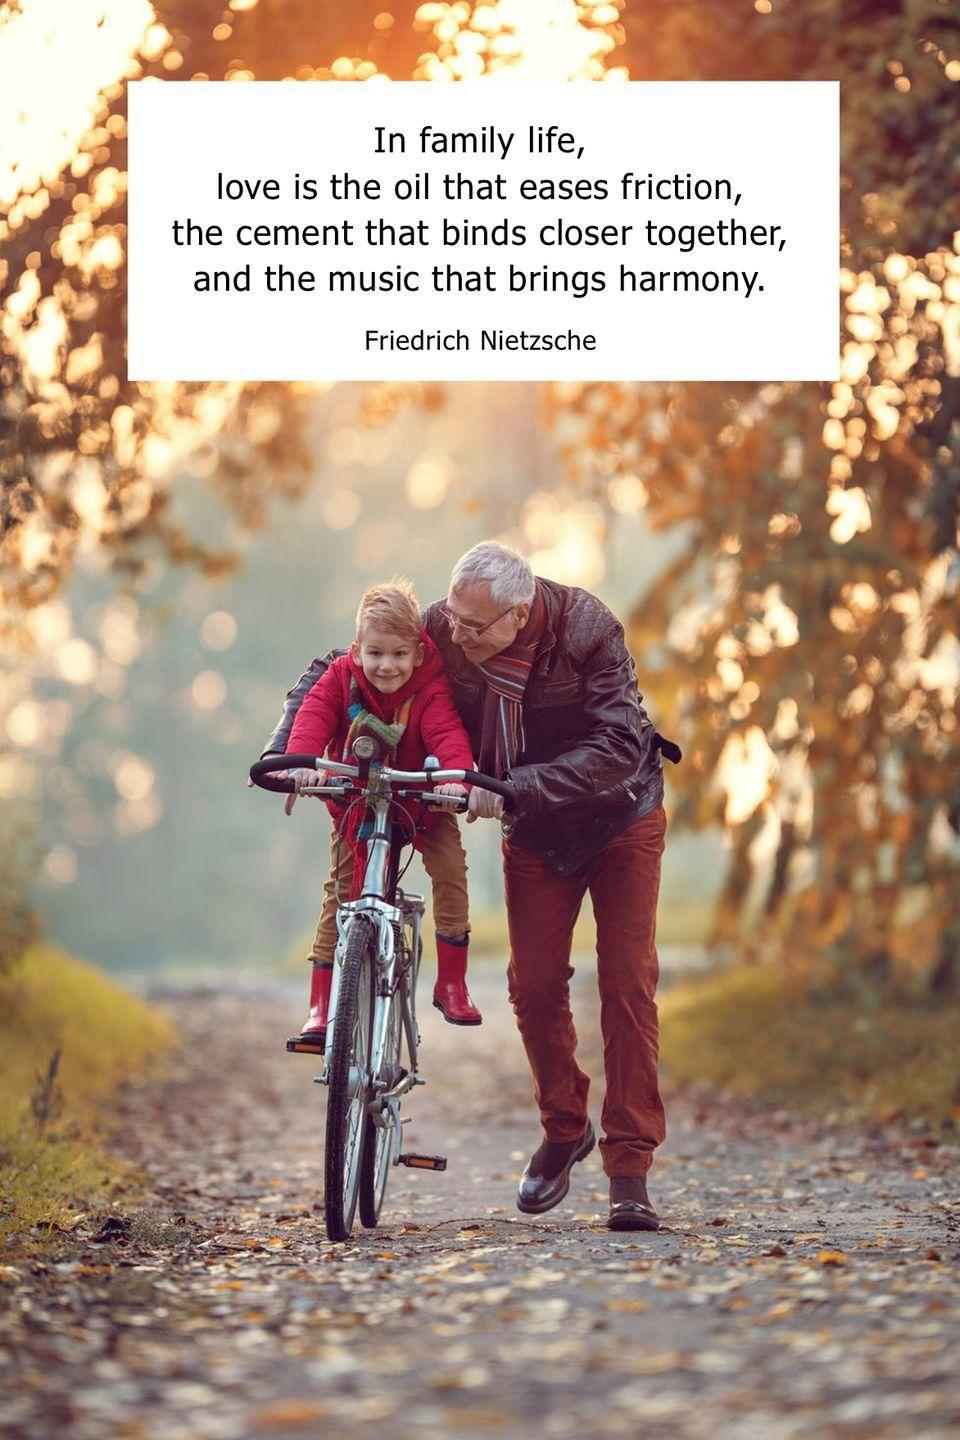 "<p>""In family life, love is the oil that eases friction, the cement that binds closer together, and the music that brings harmony.""</p>"